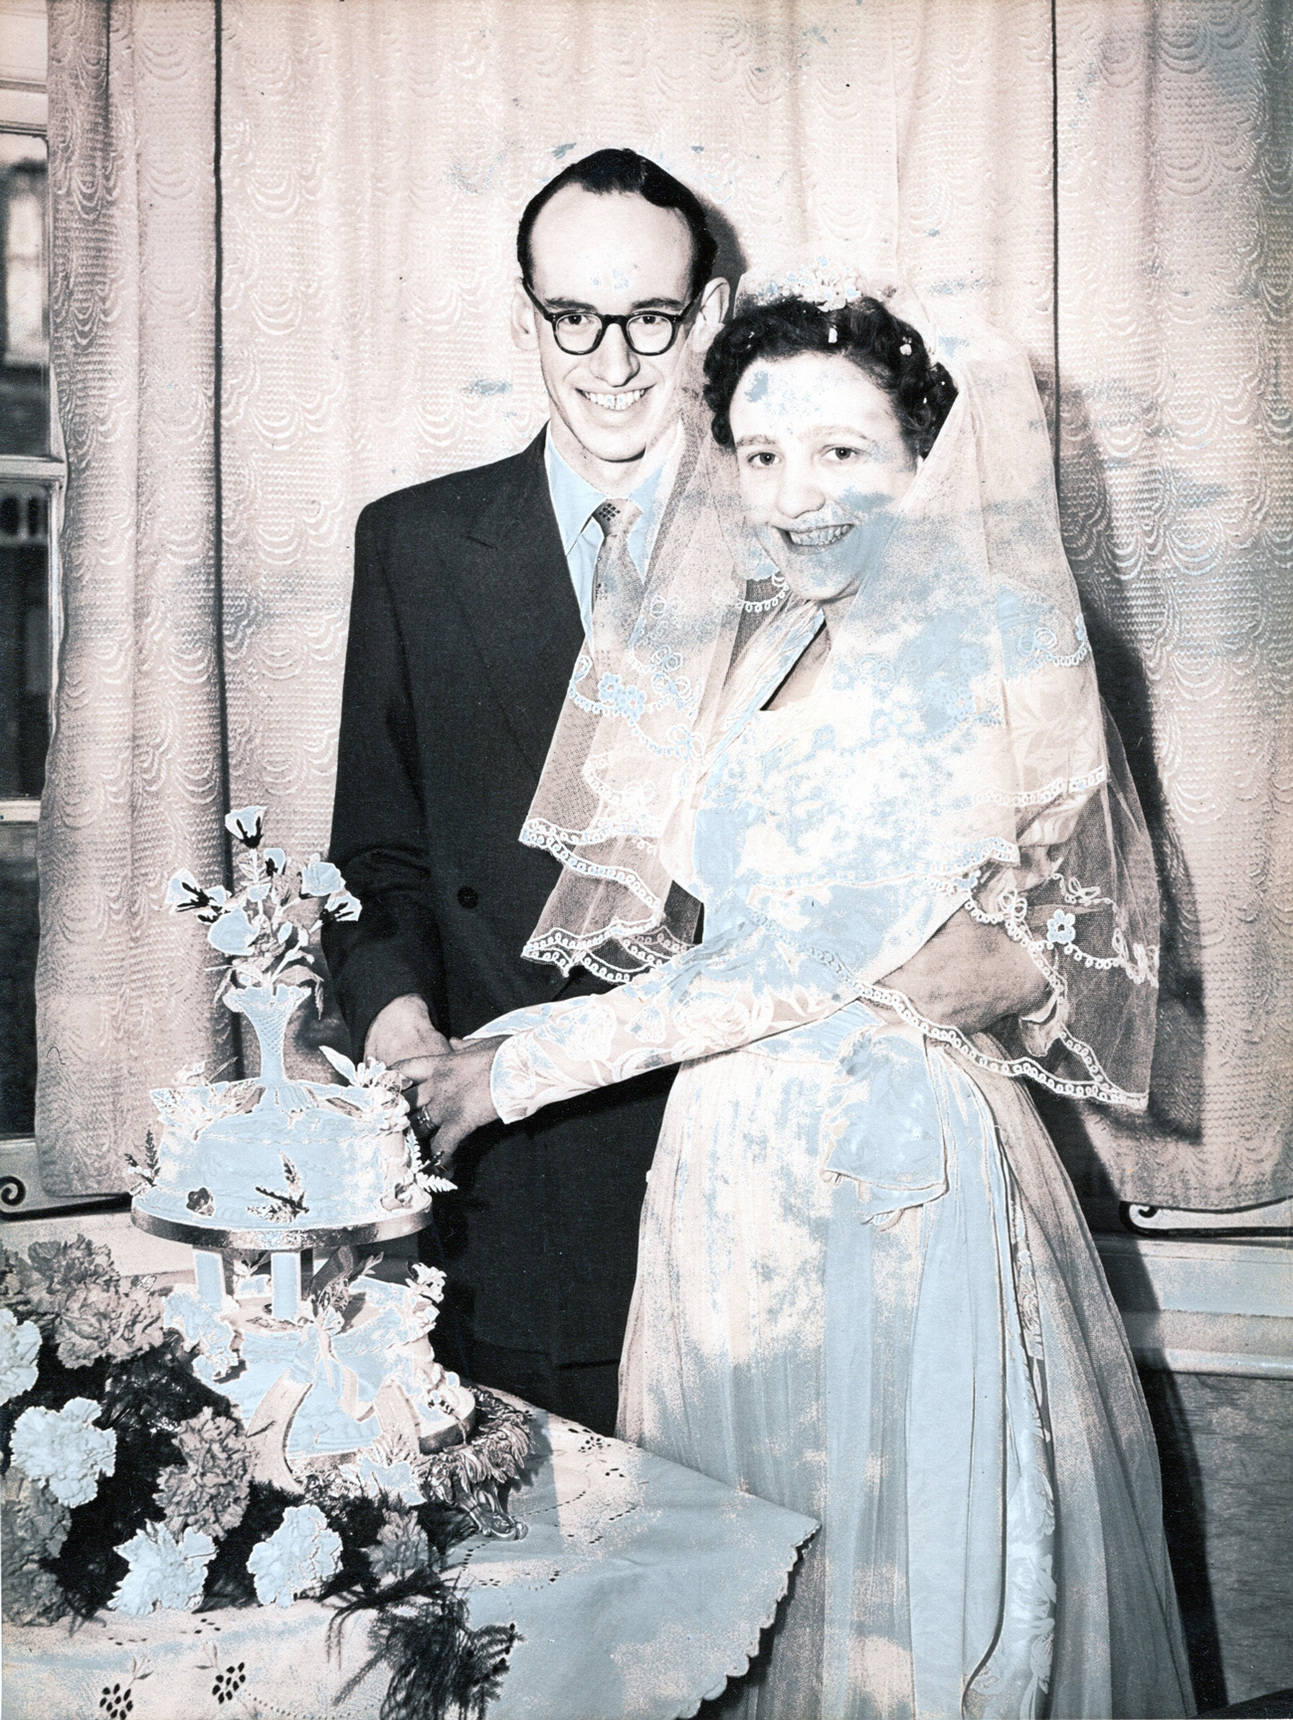 Bride And Bridegroom Cutting The Cake, 19 May 1956